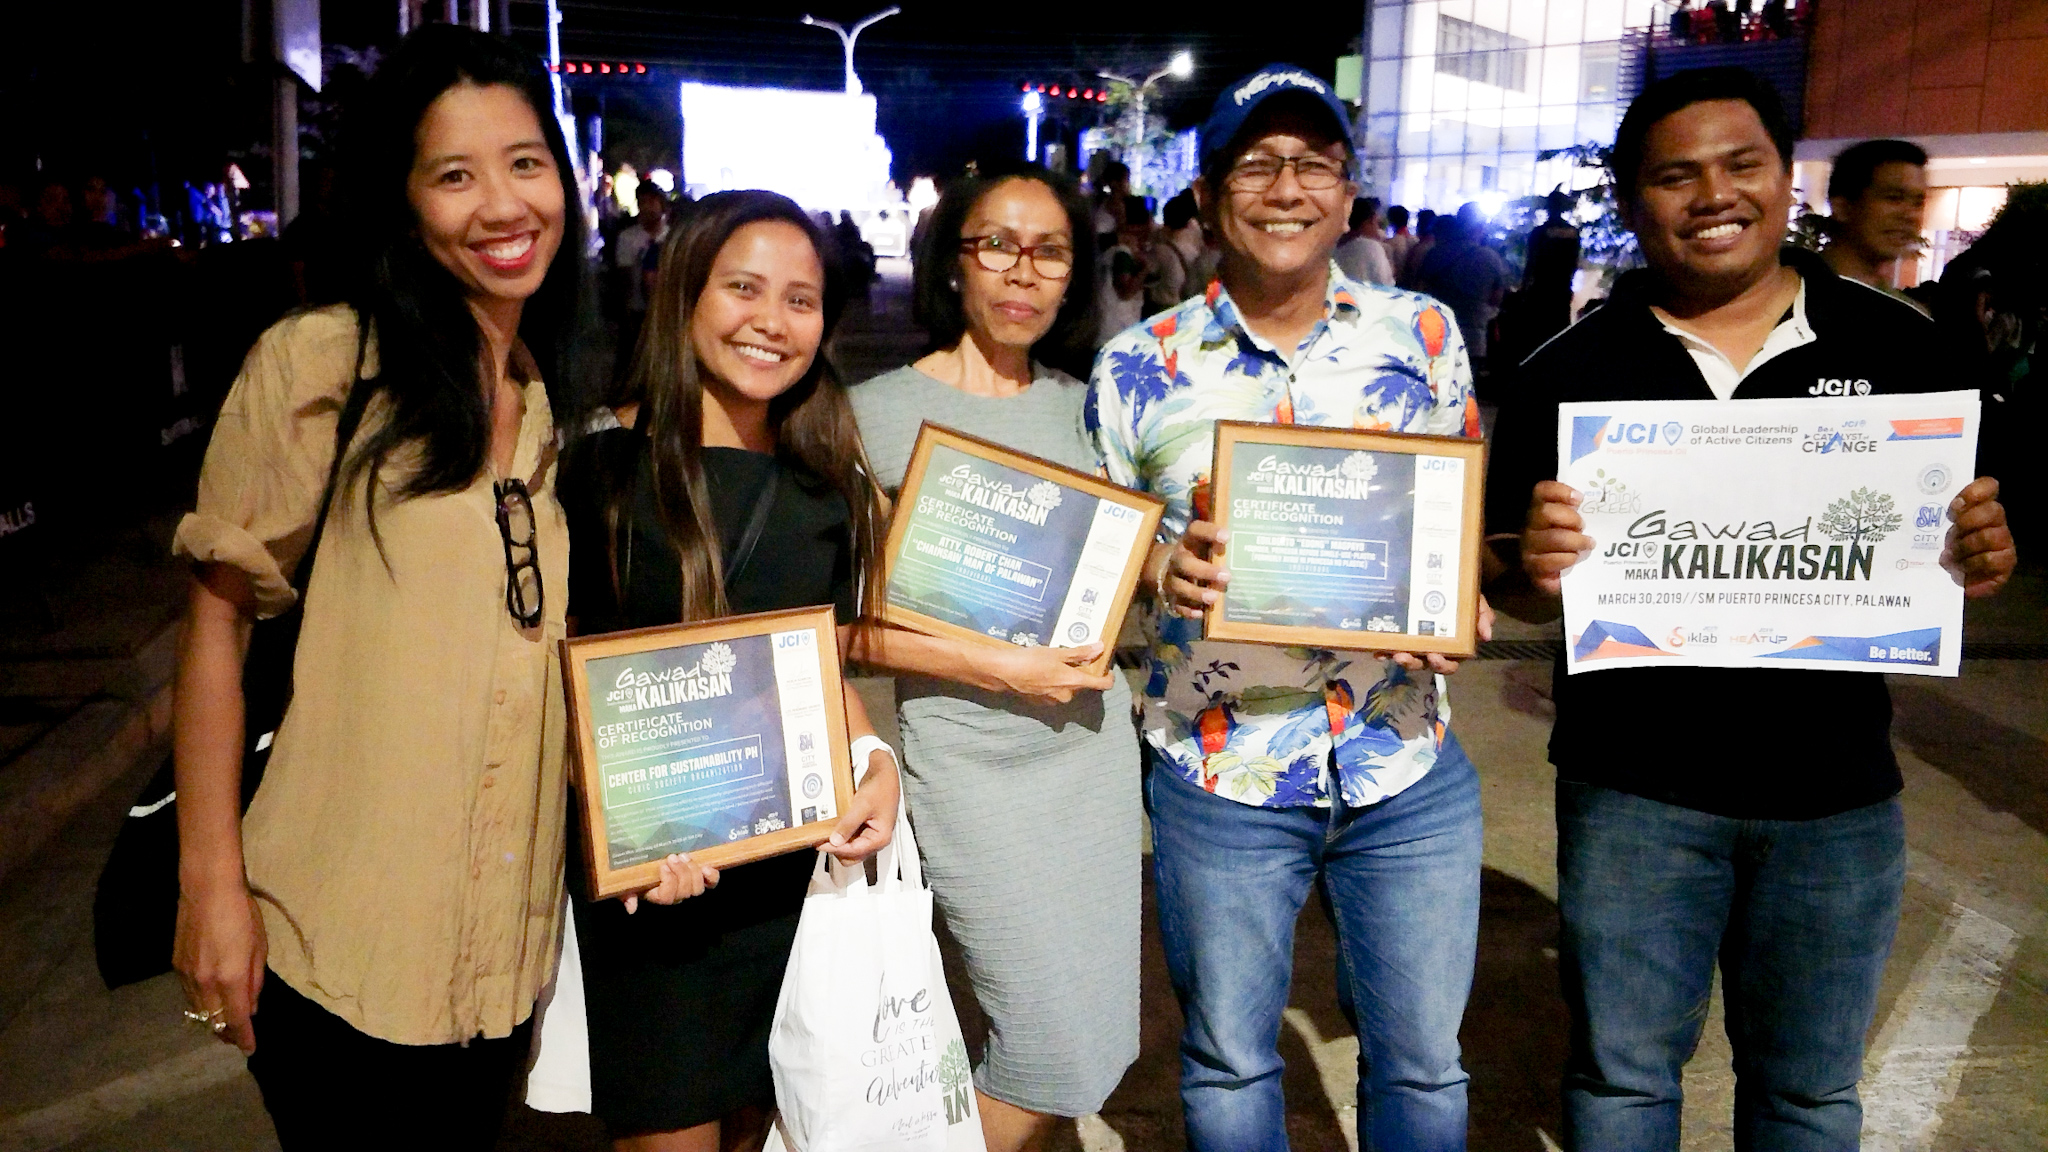 "From Left  to Right, Center for Sustainability PH, Inc (awardee for Gawad Makakalikasan, Civic Society Organization Category) Jessa Garibay and Karina Mae Reyes;  Atty Robert Chan ""Chainsaw Man of Palawan"" represented by Lorie Cagatulla, awardee for Gawad Makakalikasan Individual Category; Edong Magpayo ""Founder of Ayaw ni Princesa ng Single-Used Plastic"" awardee for Individual Category and 2019 President of JCI Puerto Princesa Oil Rexlin Azarcon. Photo from Gilbert Ramoya / JCI Puerto Princesa Oil."